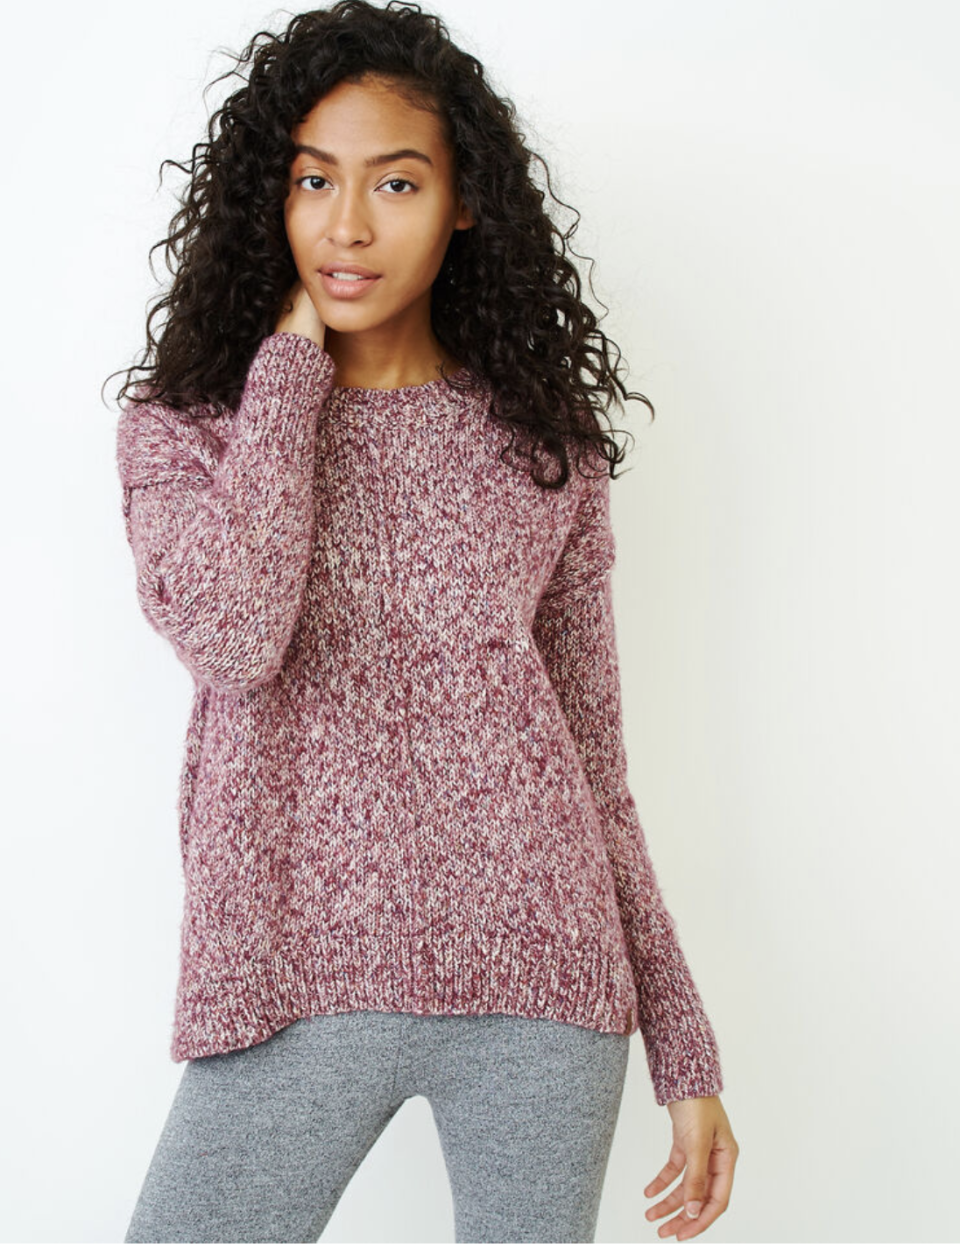 Moss Crew Sweater. Image via Roots.